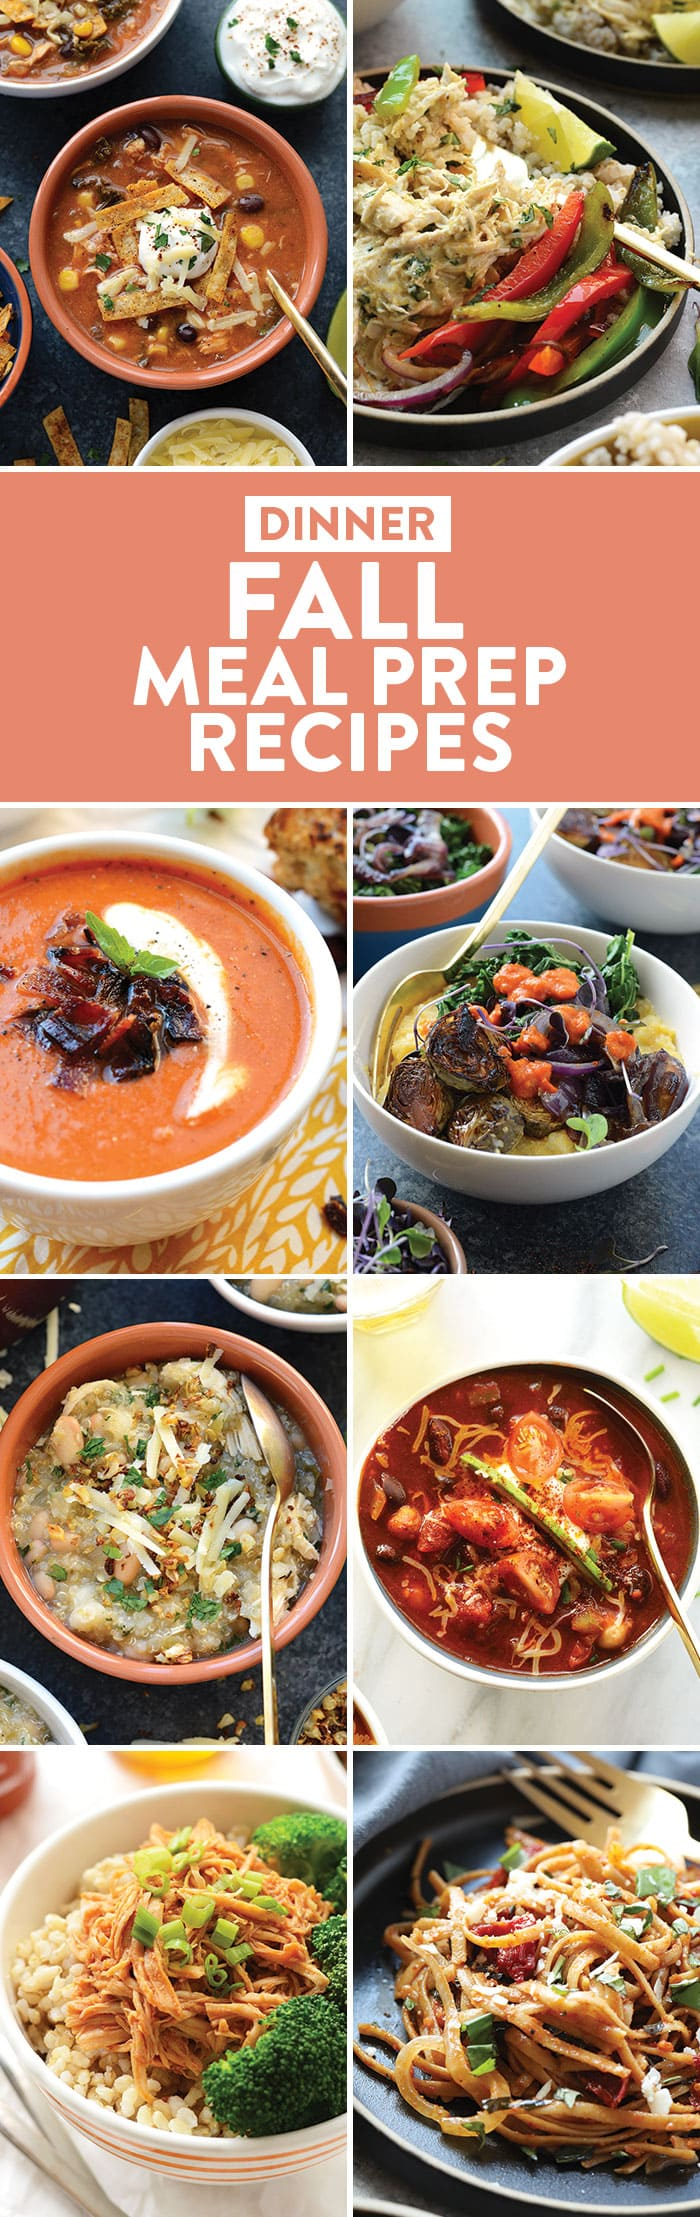 photo collage of dinner recipes